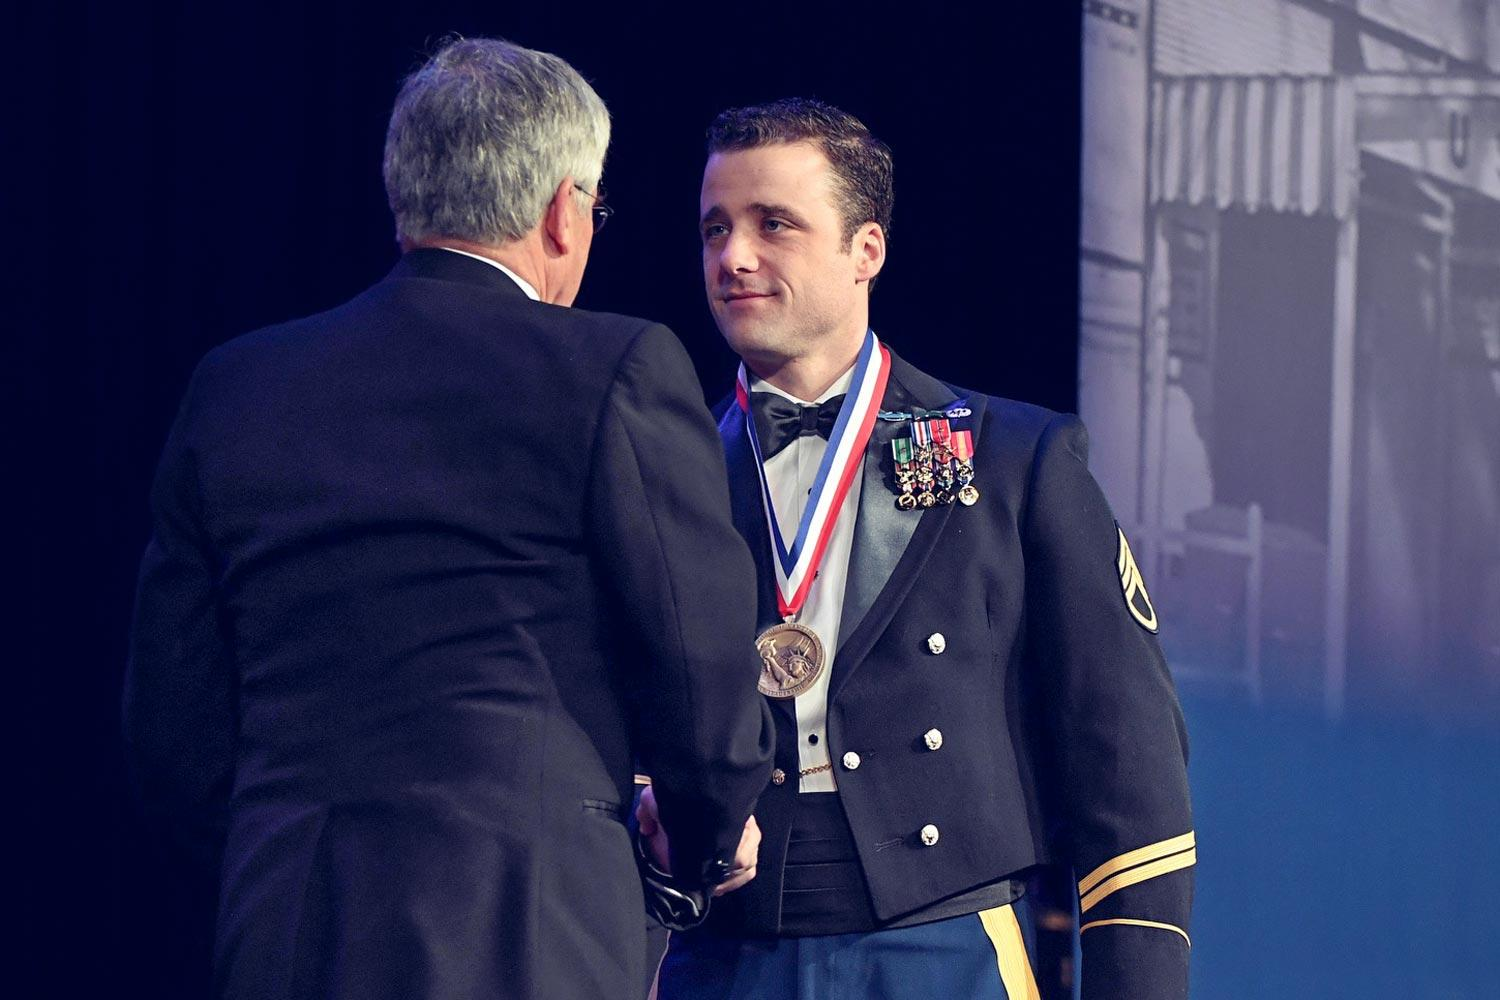 Michael Sargent Left Darden to Redeploy in Afghanistan, and Returned a Hero